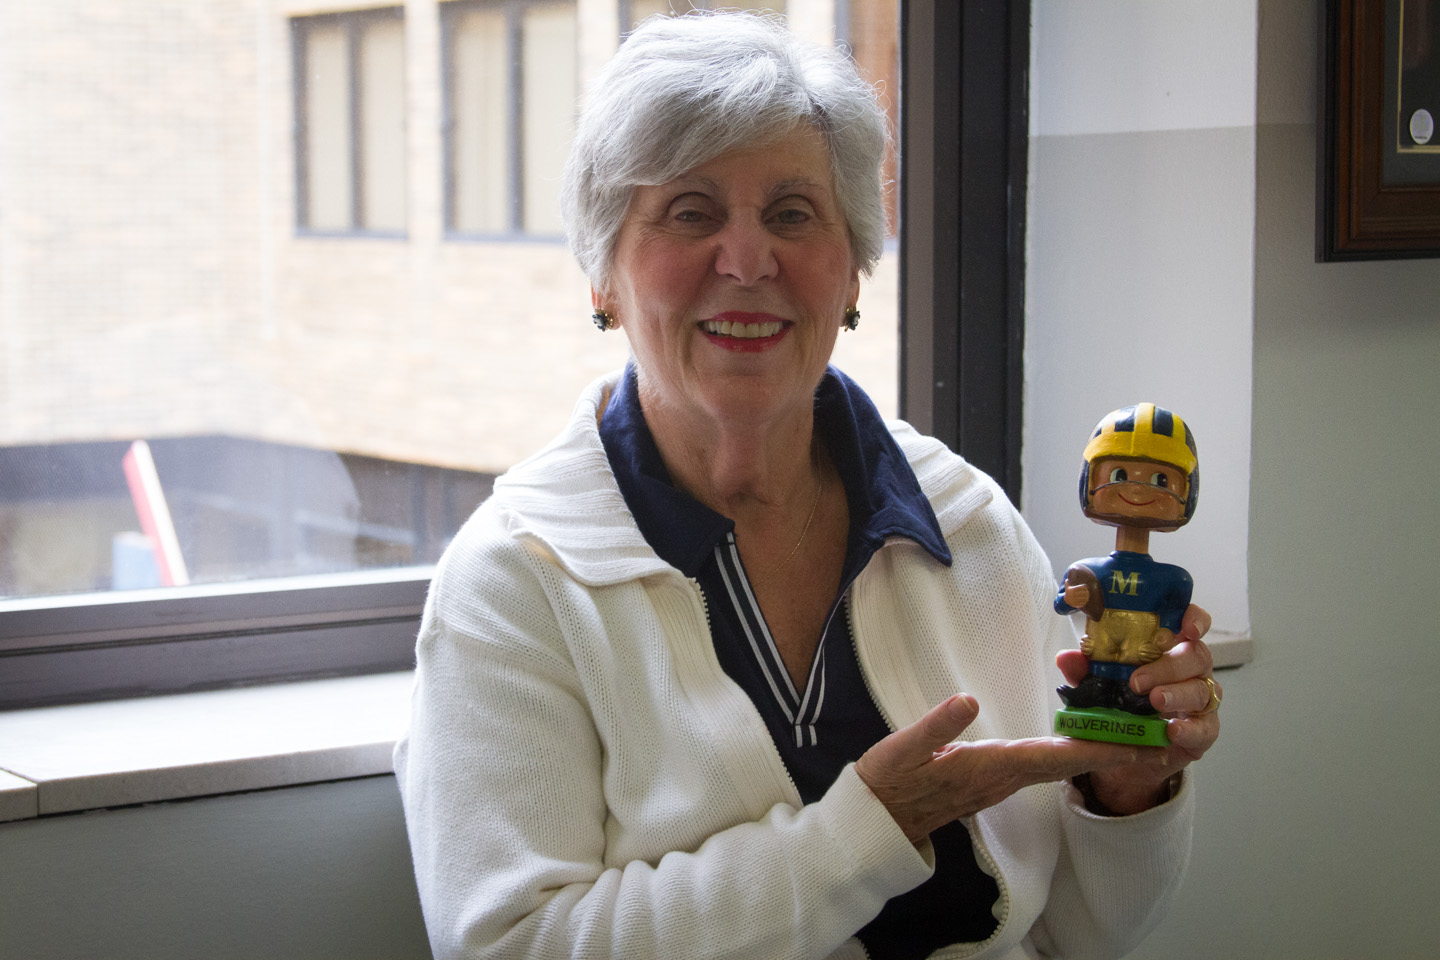 Sandy Matthews with Bobblehead-2576